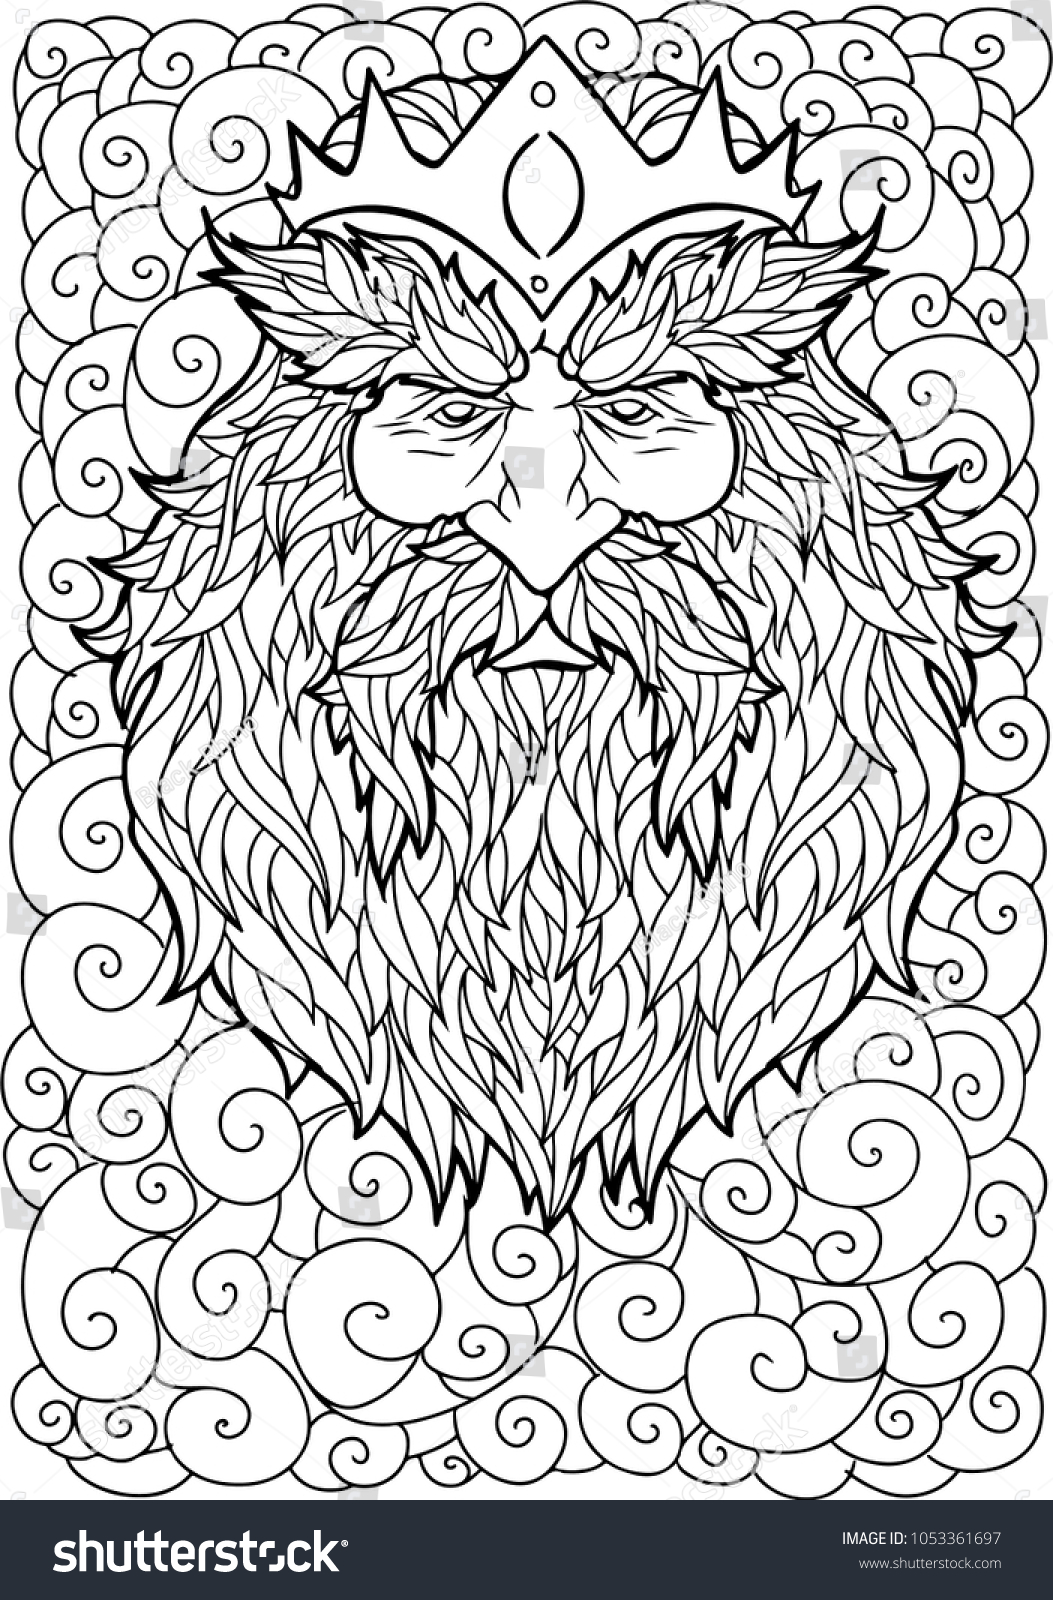 Bearded man with mustache and crown for adult coloring pages antistress tattoo art